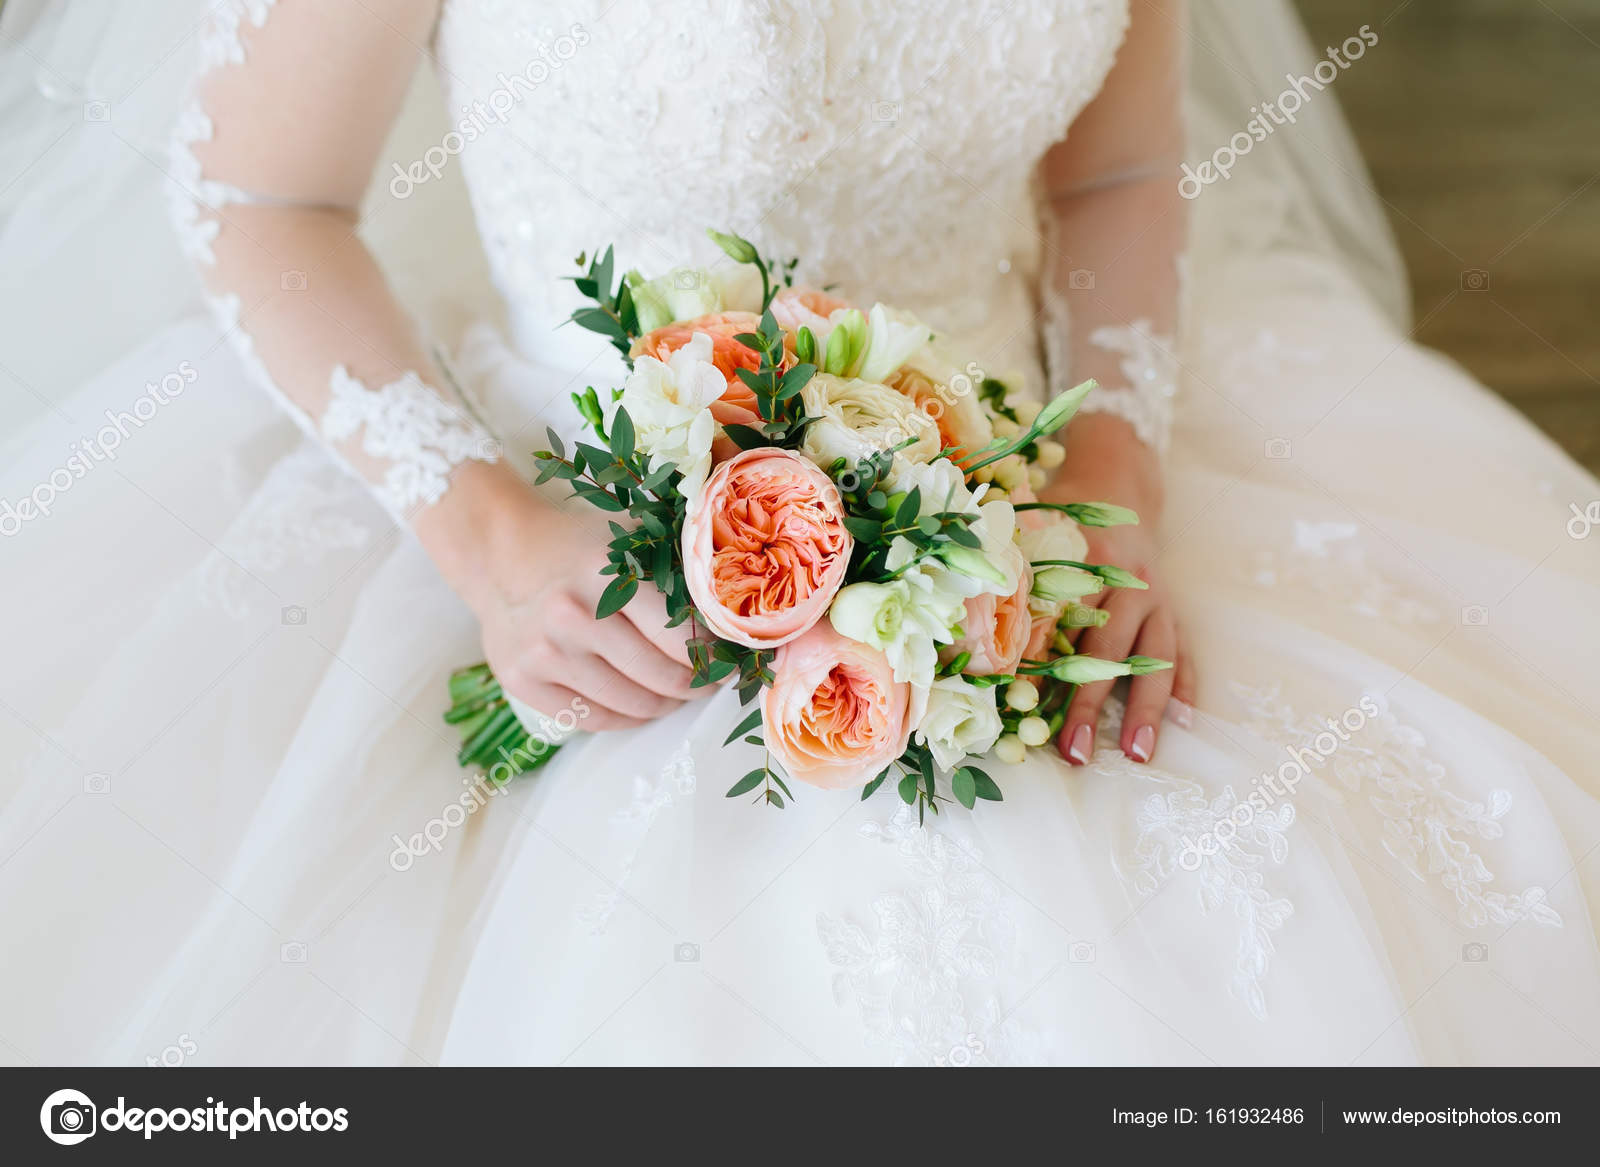 Gorgeous Bouquet Of White And Orange Flowers In The Hands Of The